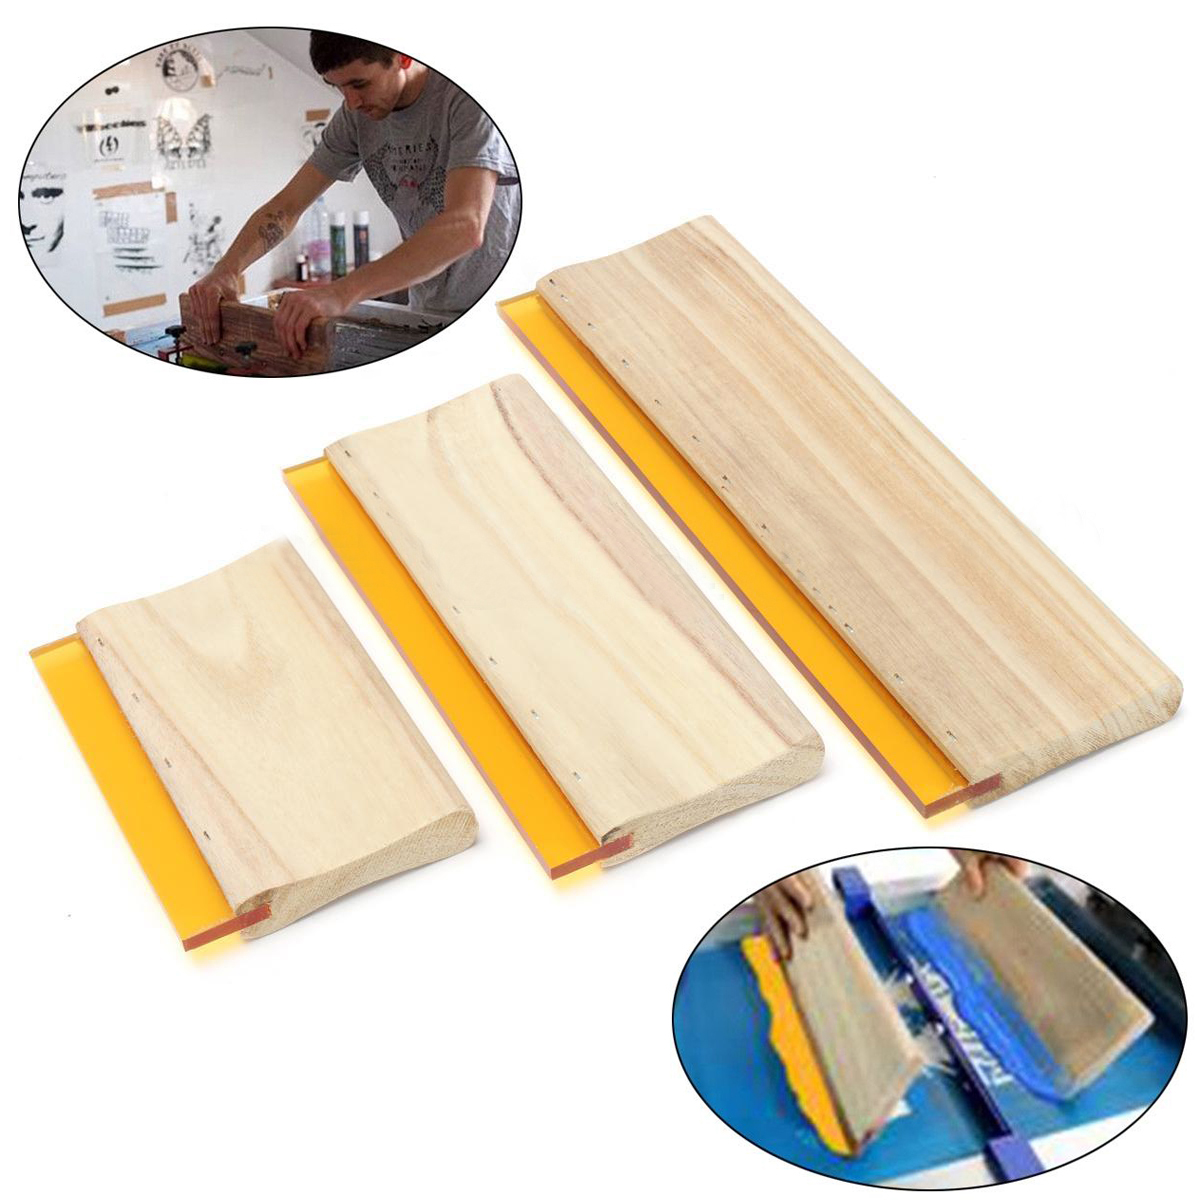 3pcs Lot Wearproof Silk Screen Printing Squeegees Blade Wooden Handle Mayitr Ink Scaper Scratch Board Tools